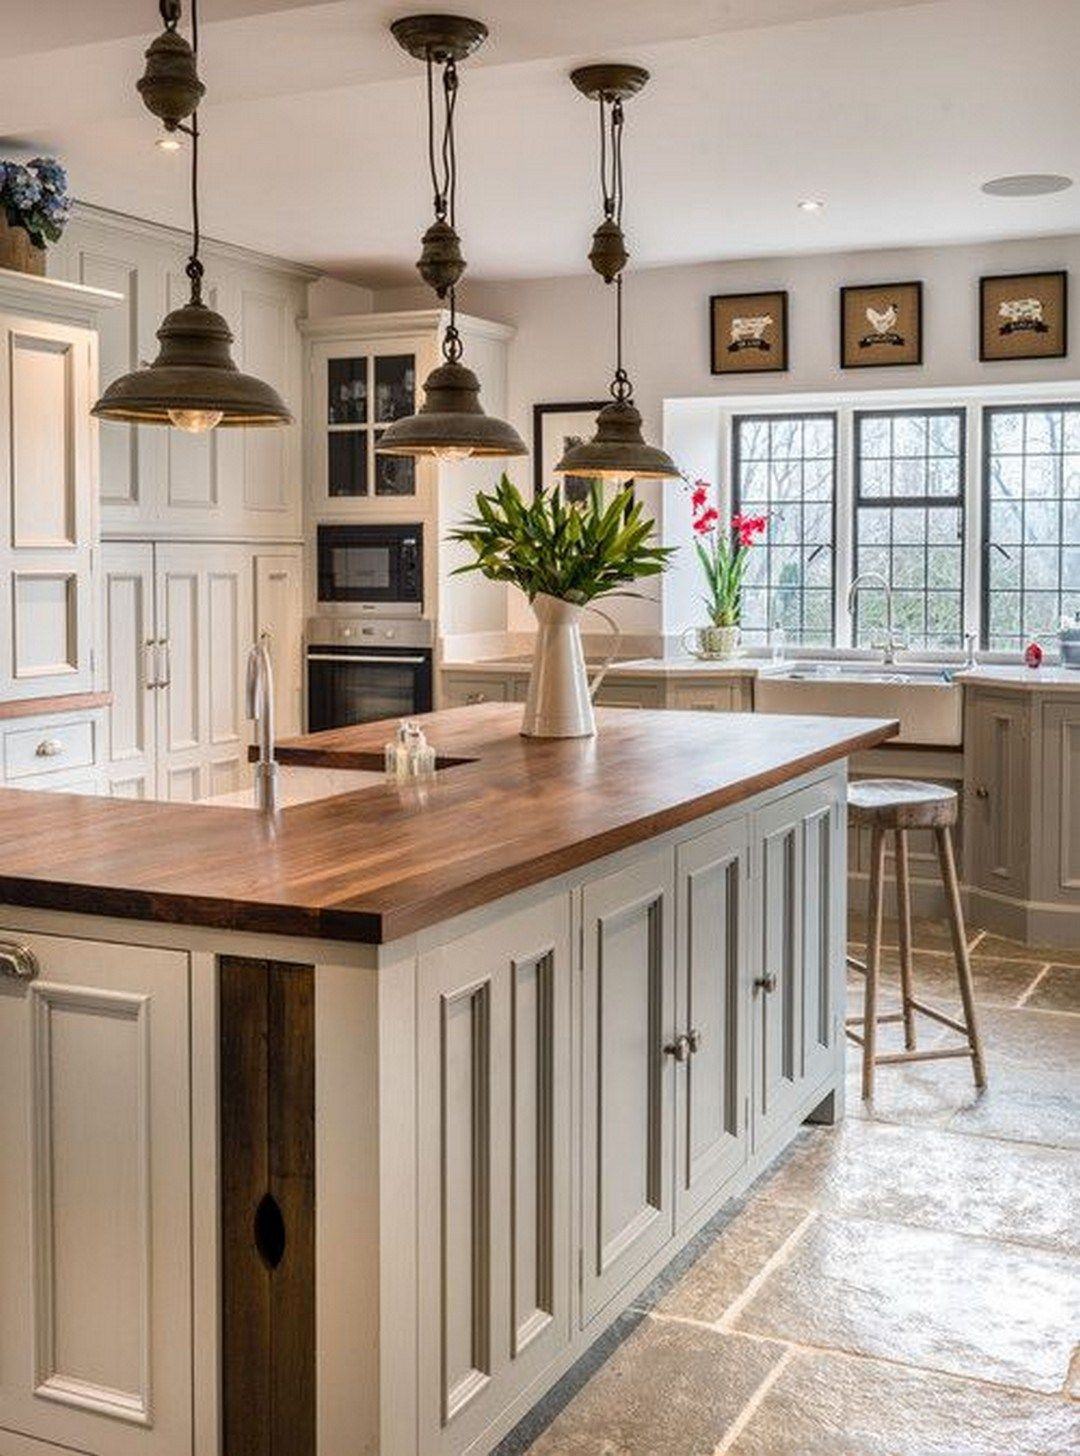 Farmhouse Decorating Style 99 Ideas For Living Room And Kitchen (19 ...